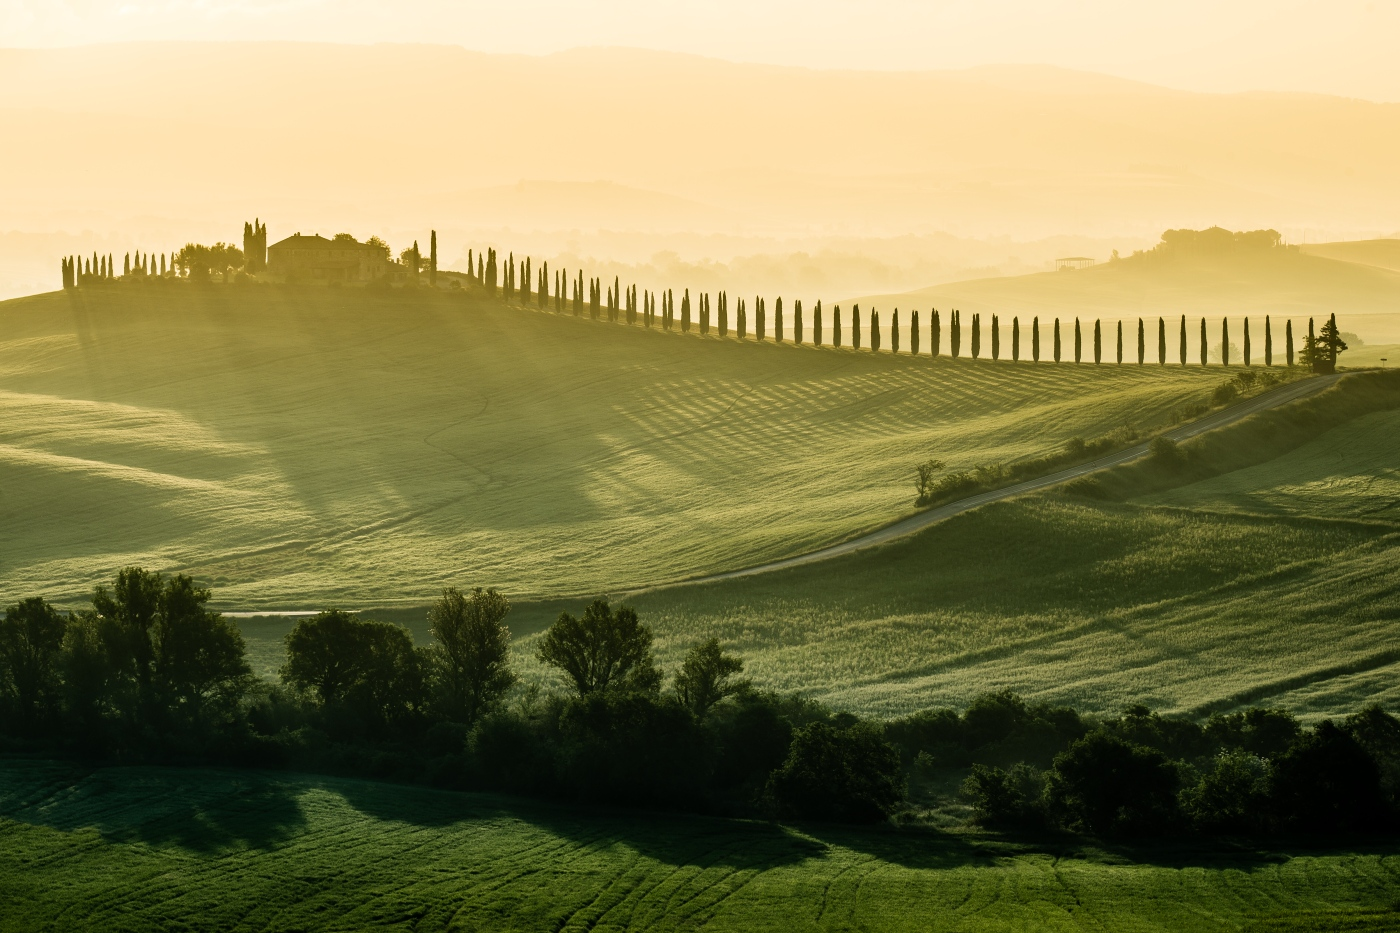 The cypresses of Tuscany